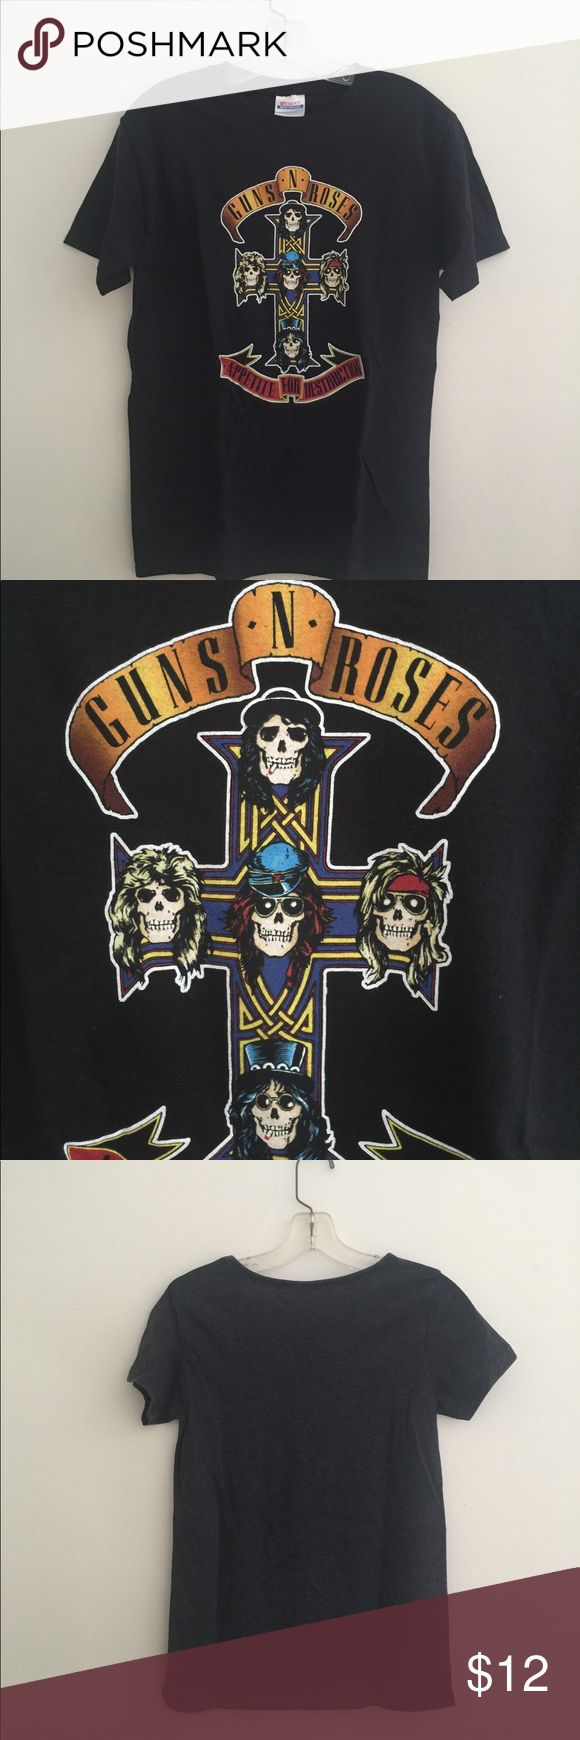 Guns N Roses Appetite For Destruction Tee Guns N Roses Crew Neck Logo T-Shirt Front: Slash's iconic totem cross artwork from the Appetite For Destruction album. Plain black back. Size:  Adult small 34/36 Excellent condition. 1oo% Pre shrunk cotton. No flaws. No fading, piling or holes. Shirts Tees - Short Sleeve